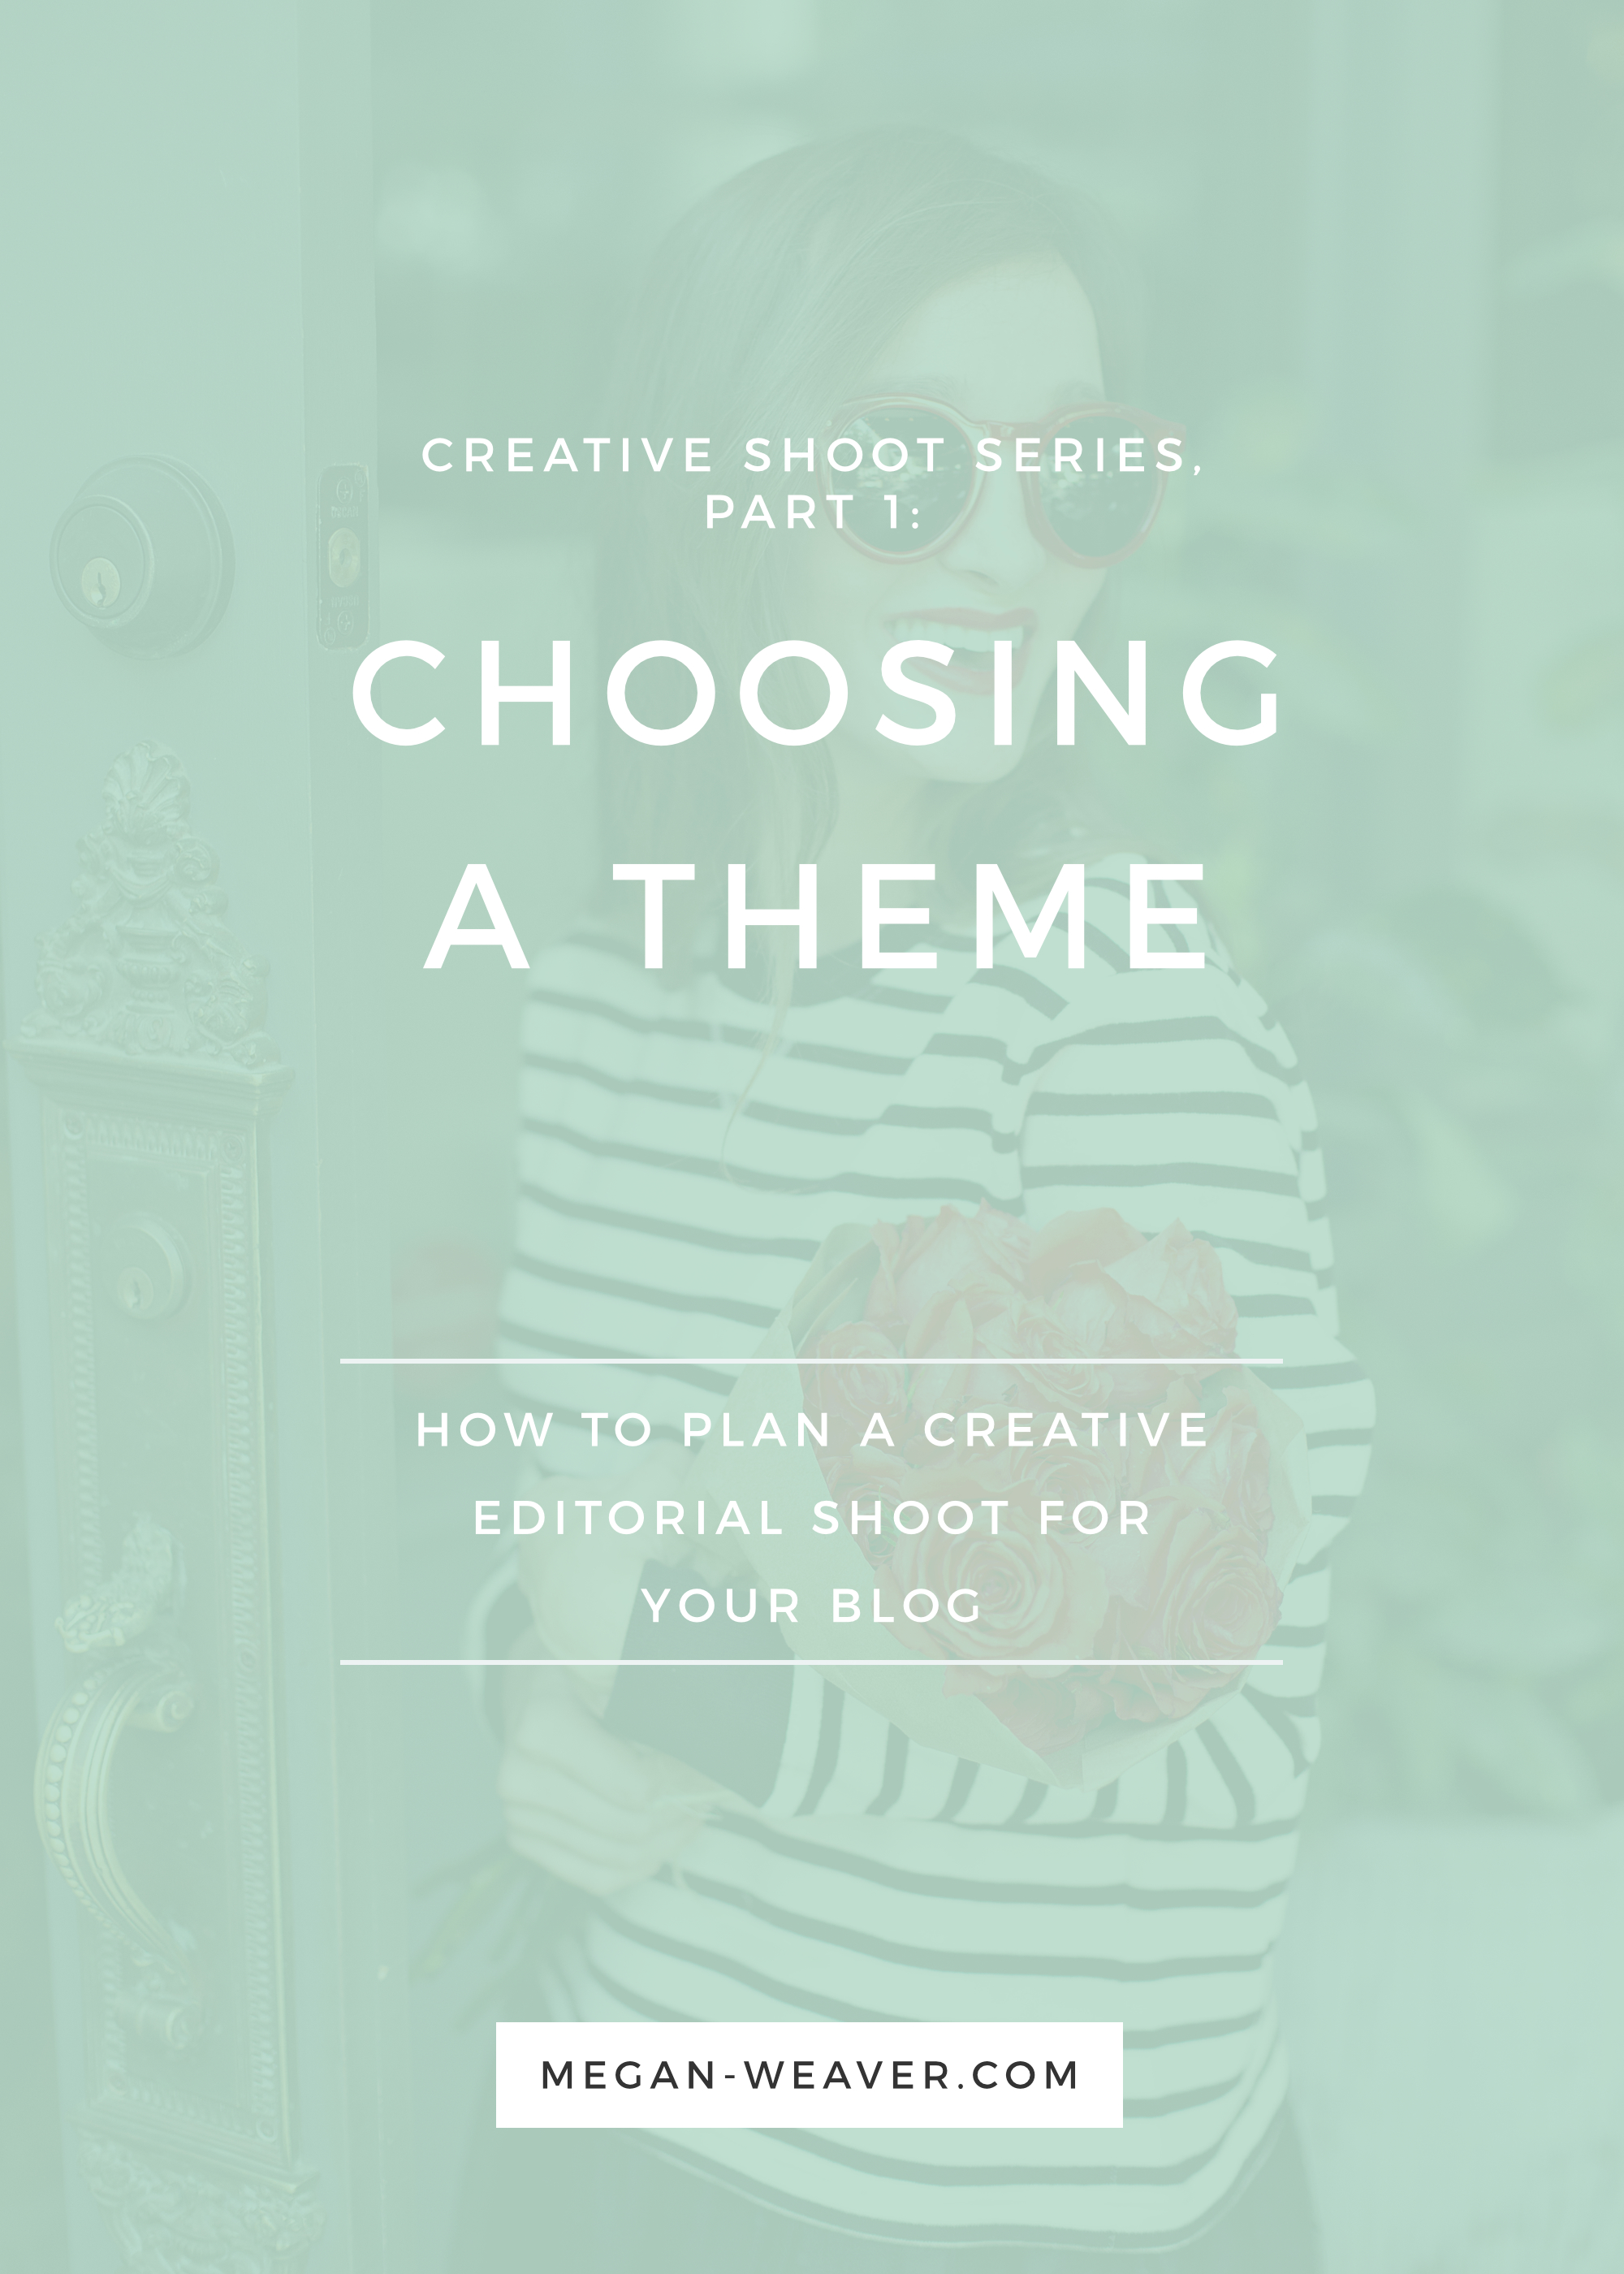 The first step to planning a creative editorial shoot for you blog is choosing a theme! In the first part of my 4-part series, I'll show you how to go about picking a theme that's right for your brand as a blogger or business.